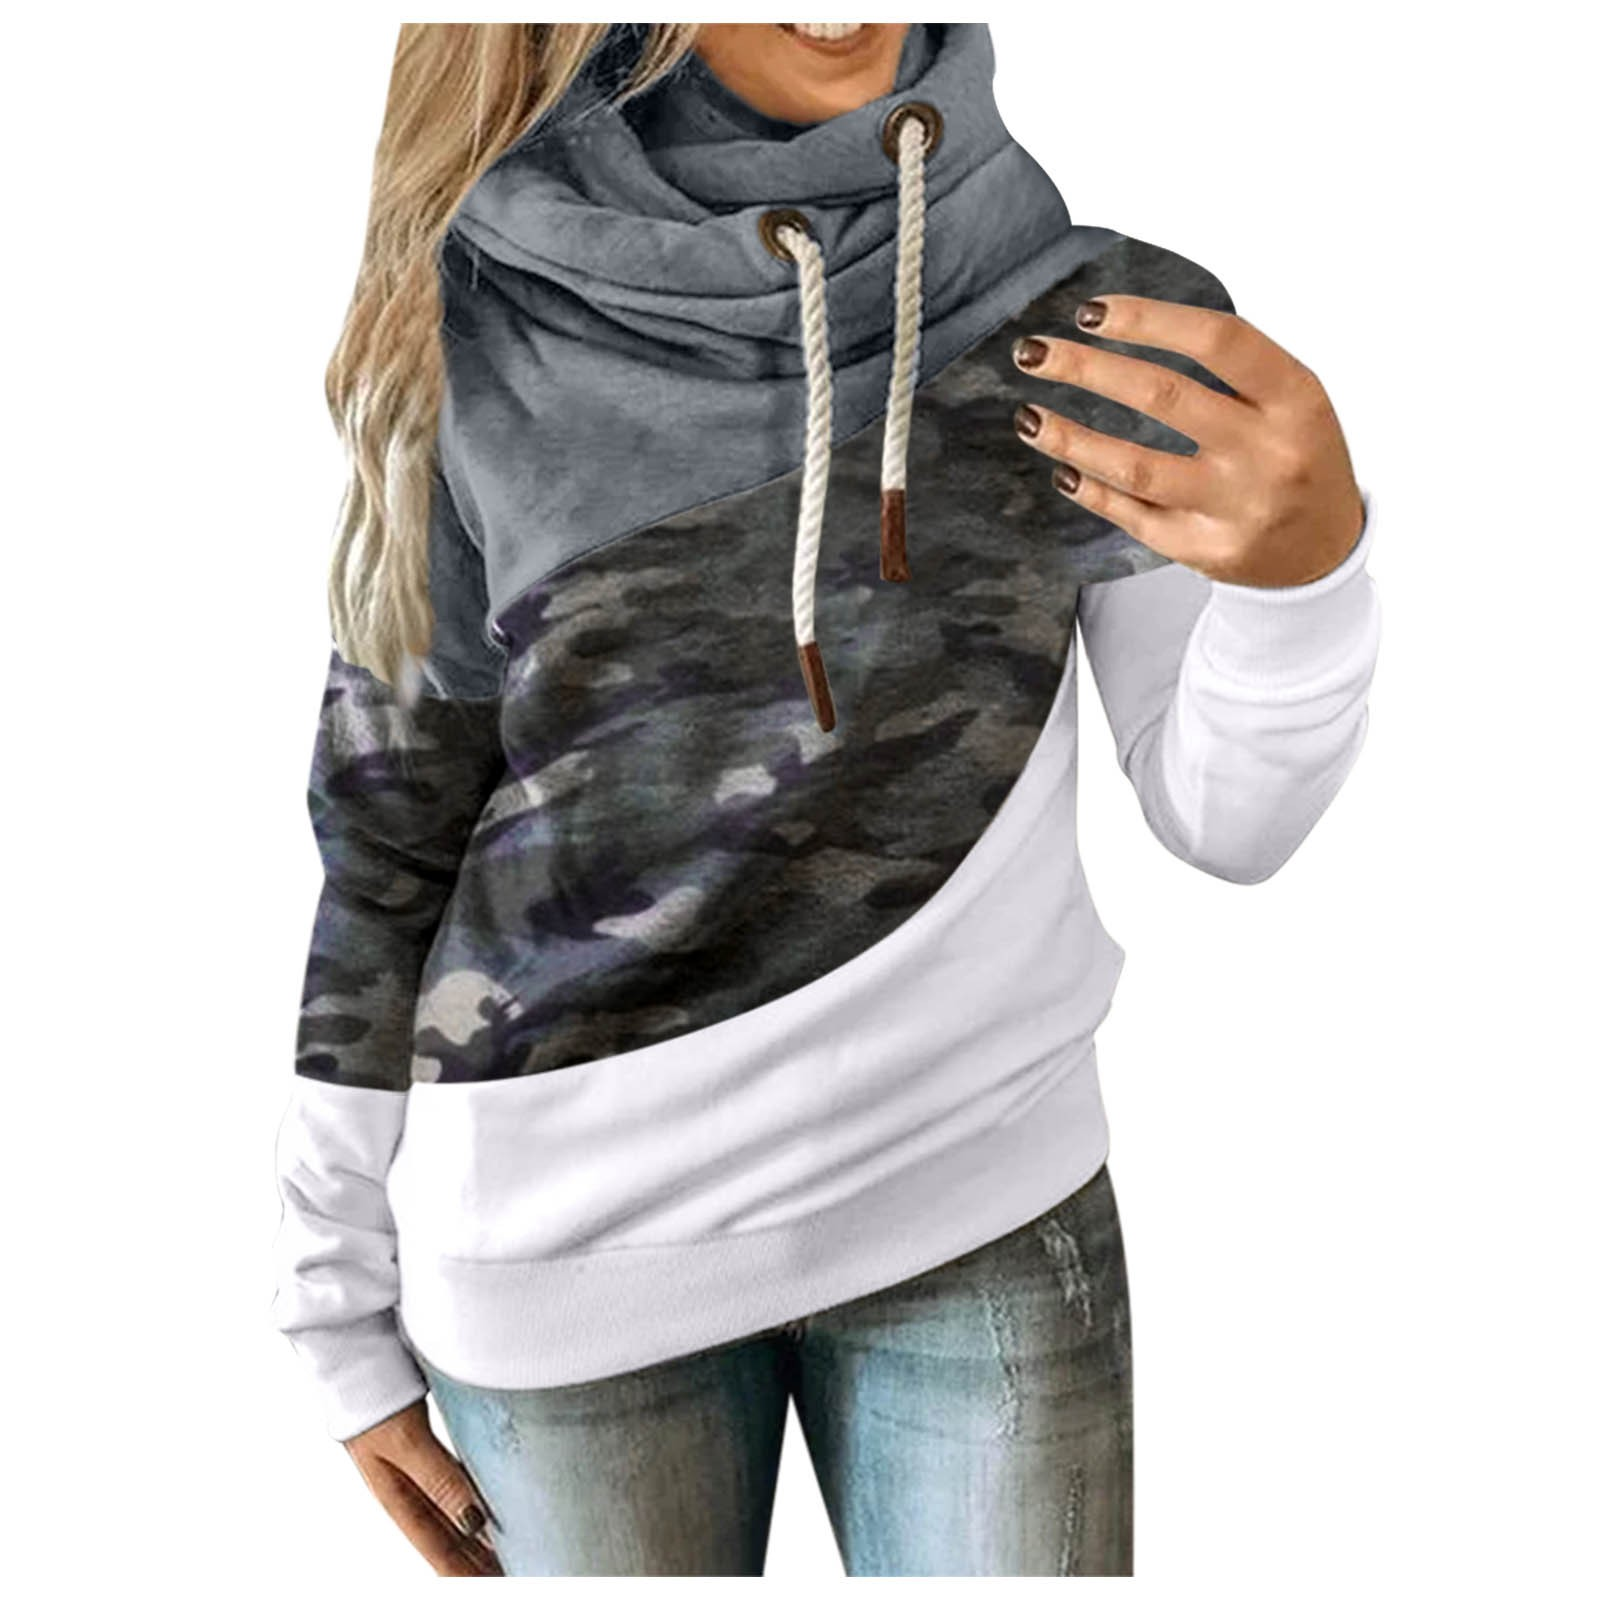 Hot Sale Women Casual Solid Contrast Long Sleeve Hoodie Sweatshirt Patchwork Printed Tops Sudaderas Mujer 2020 F Fast Ship 8